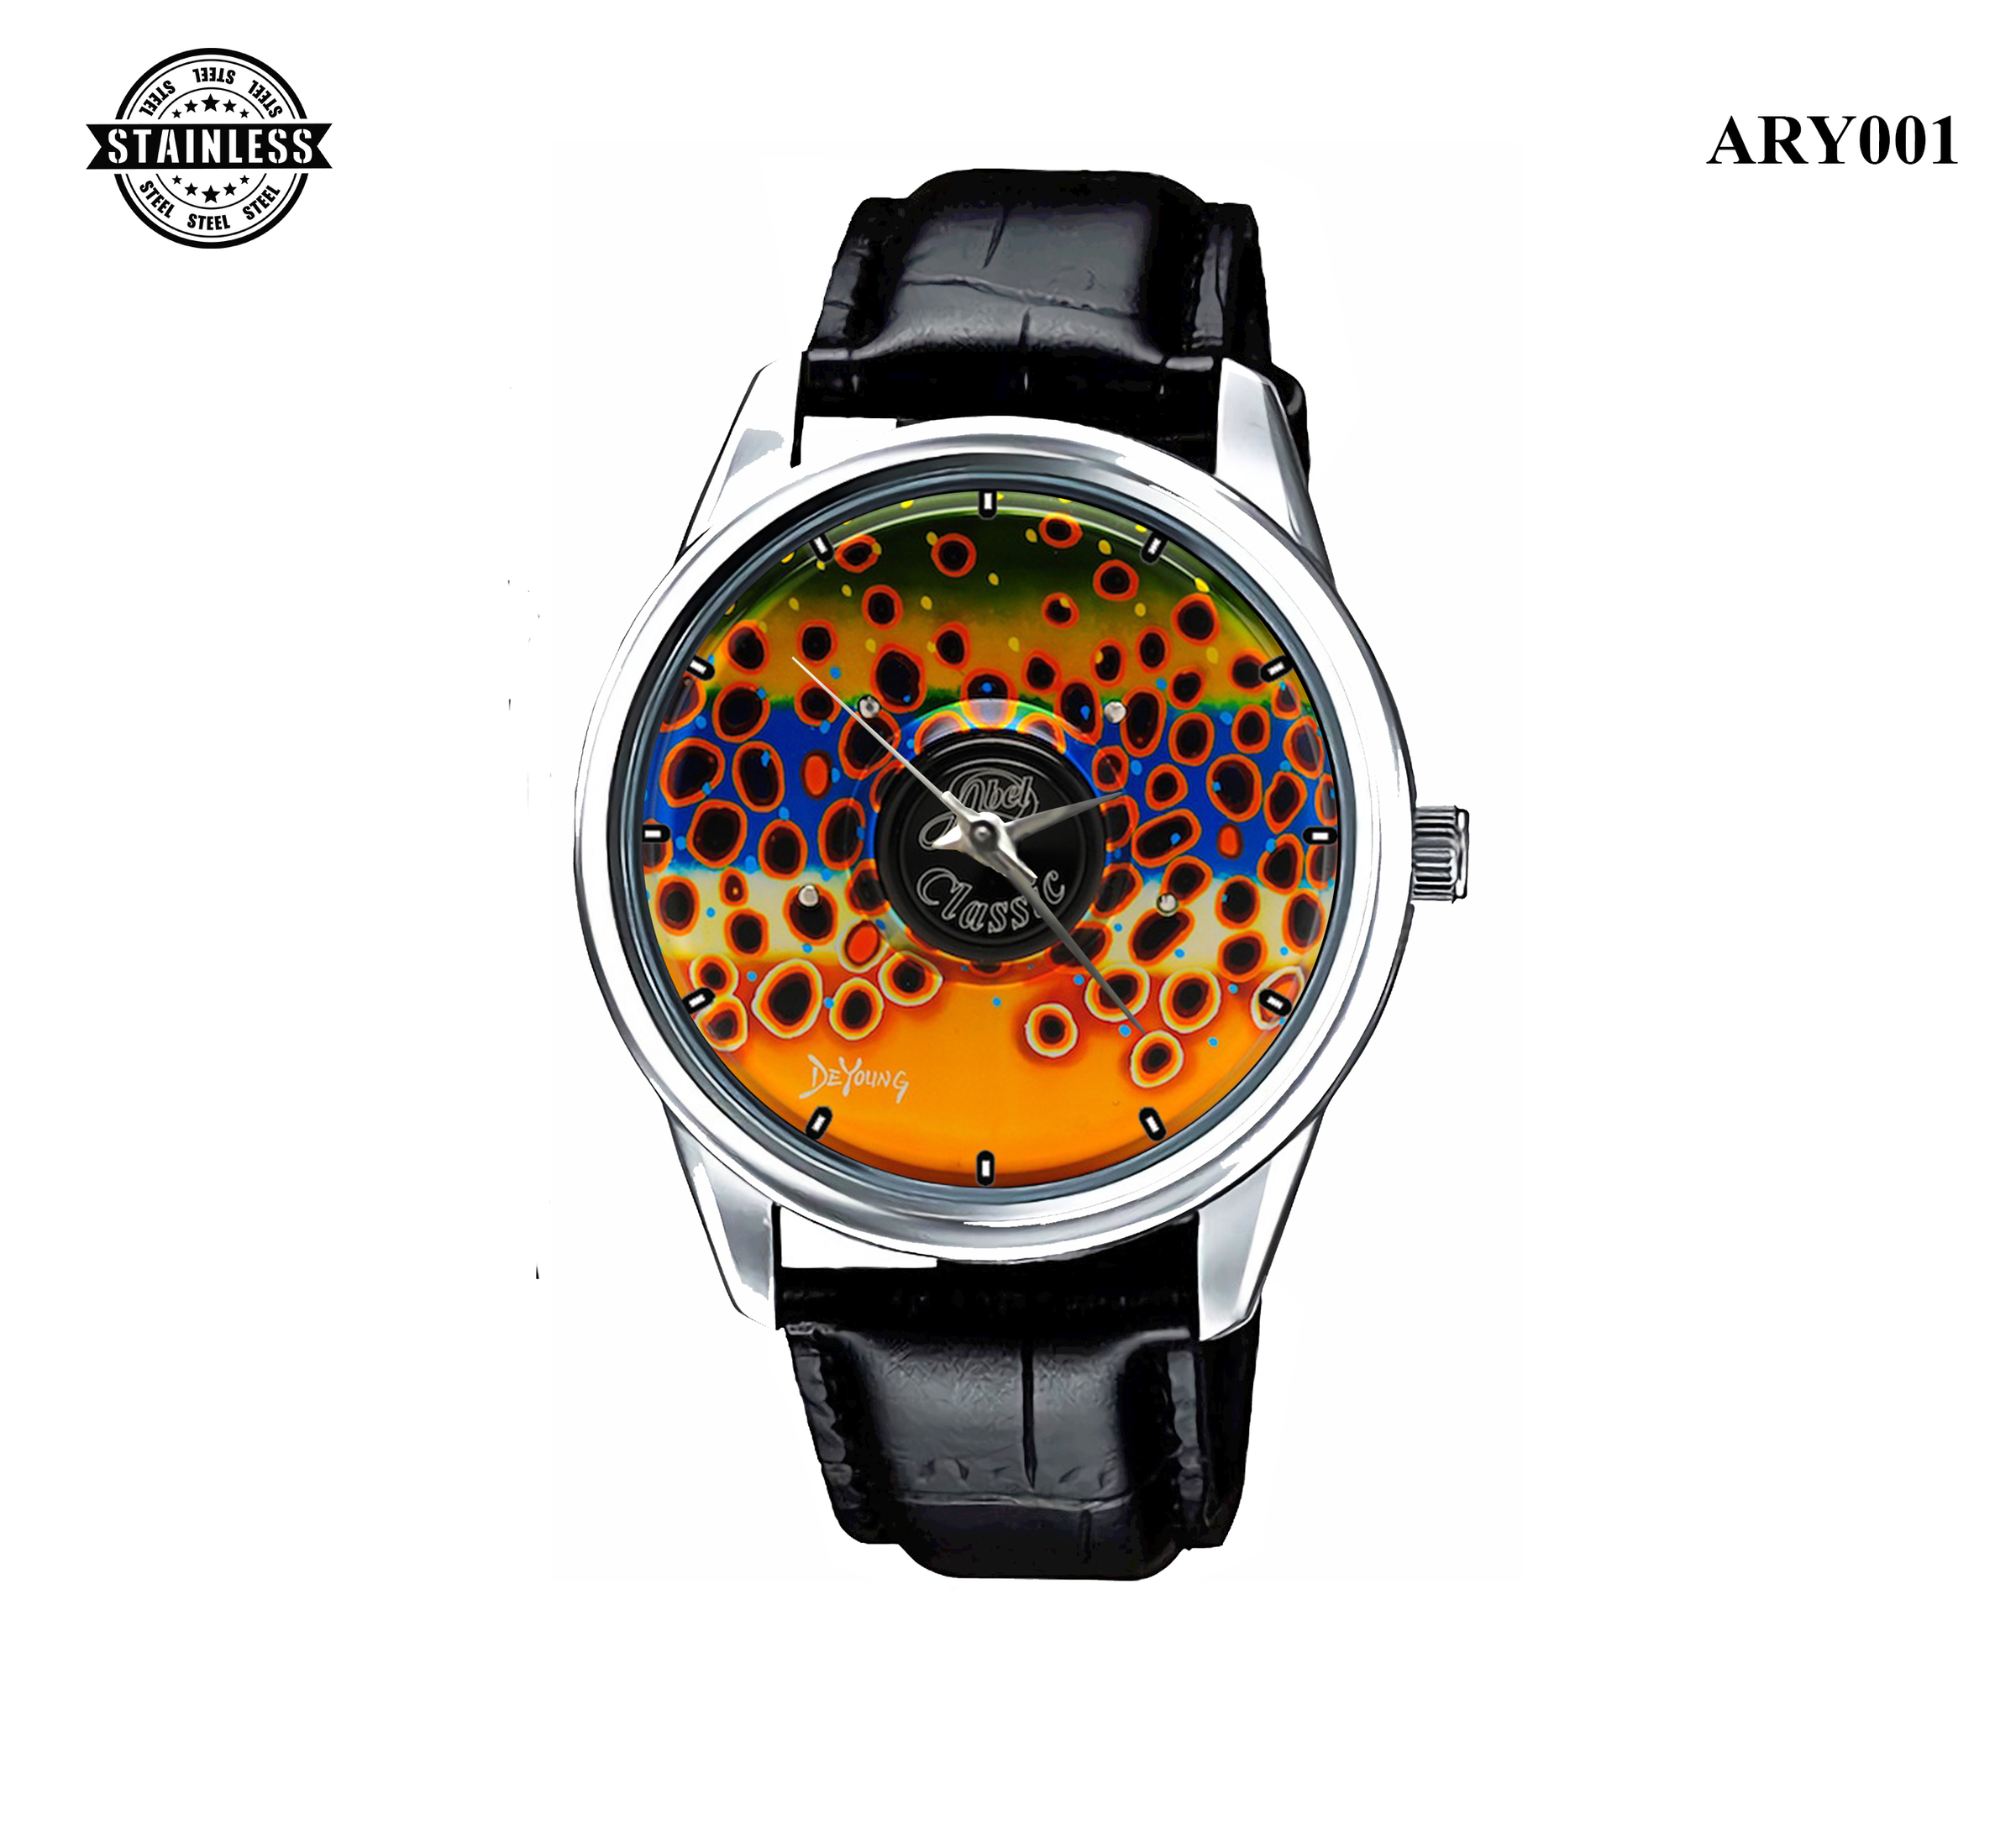 3.RARE!new design ABEL CLASSIC FLY REEL IN FISH Sport Metal Watch.jpg